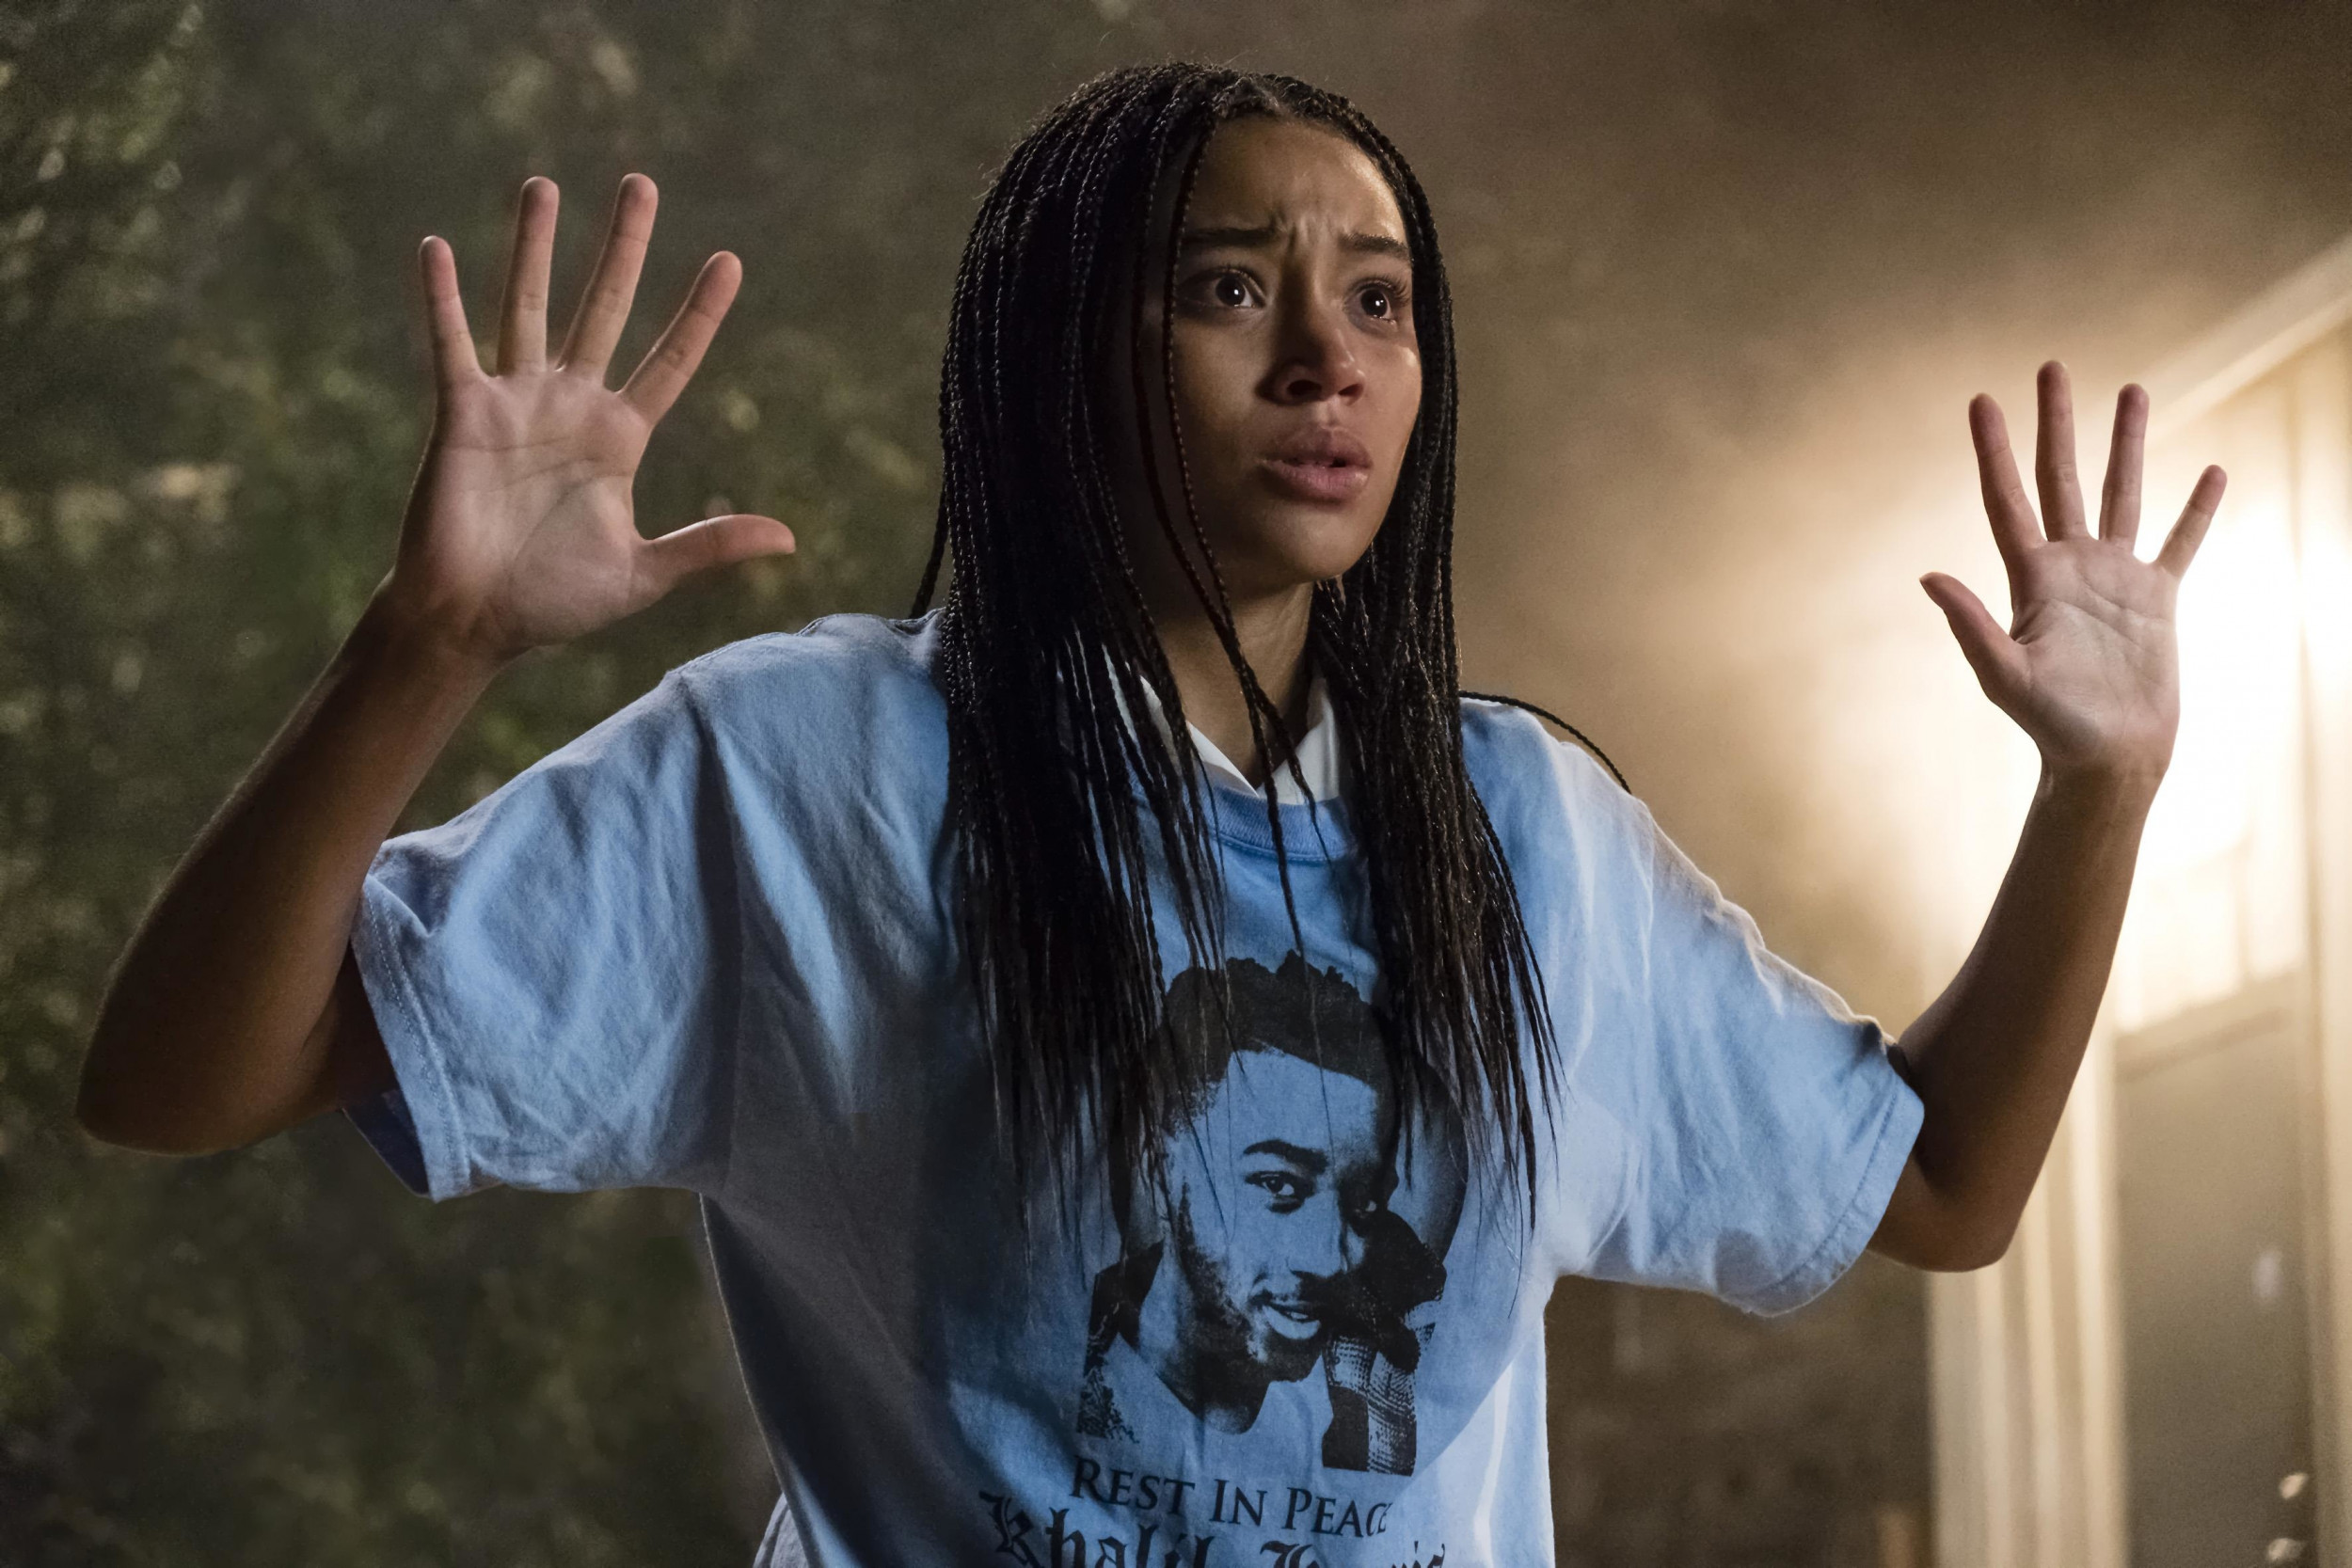 the hate u give full movie online free